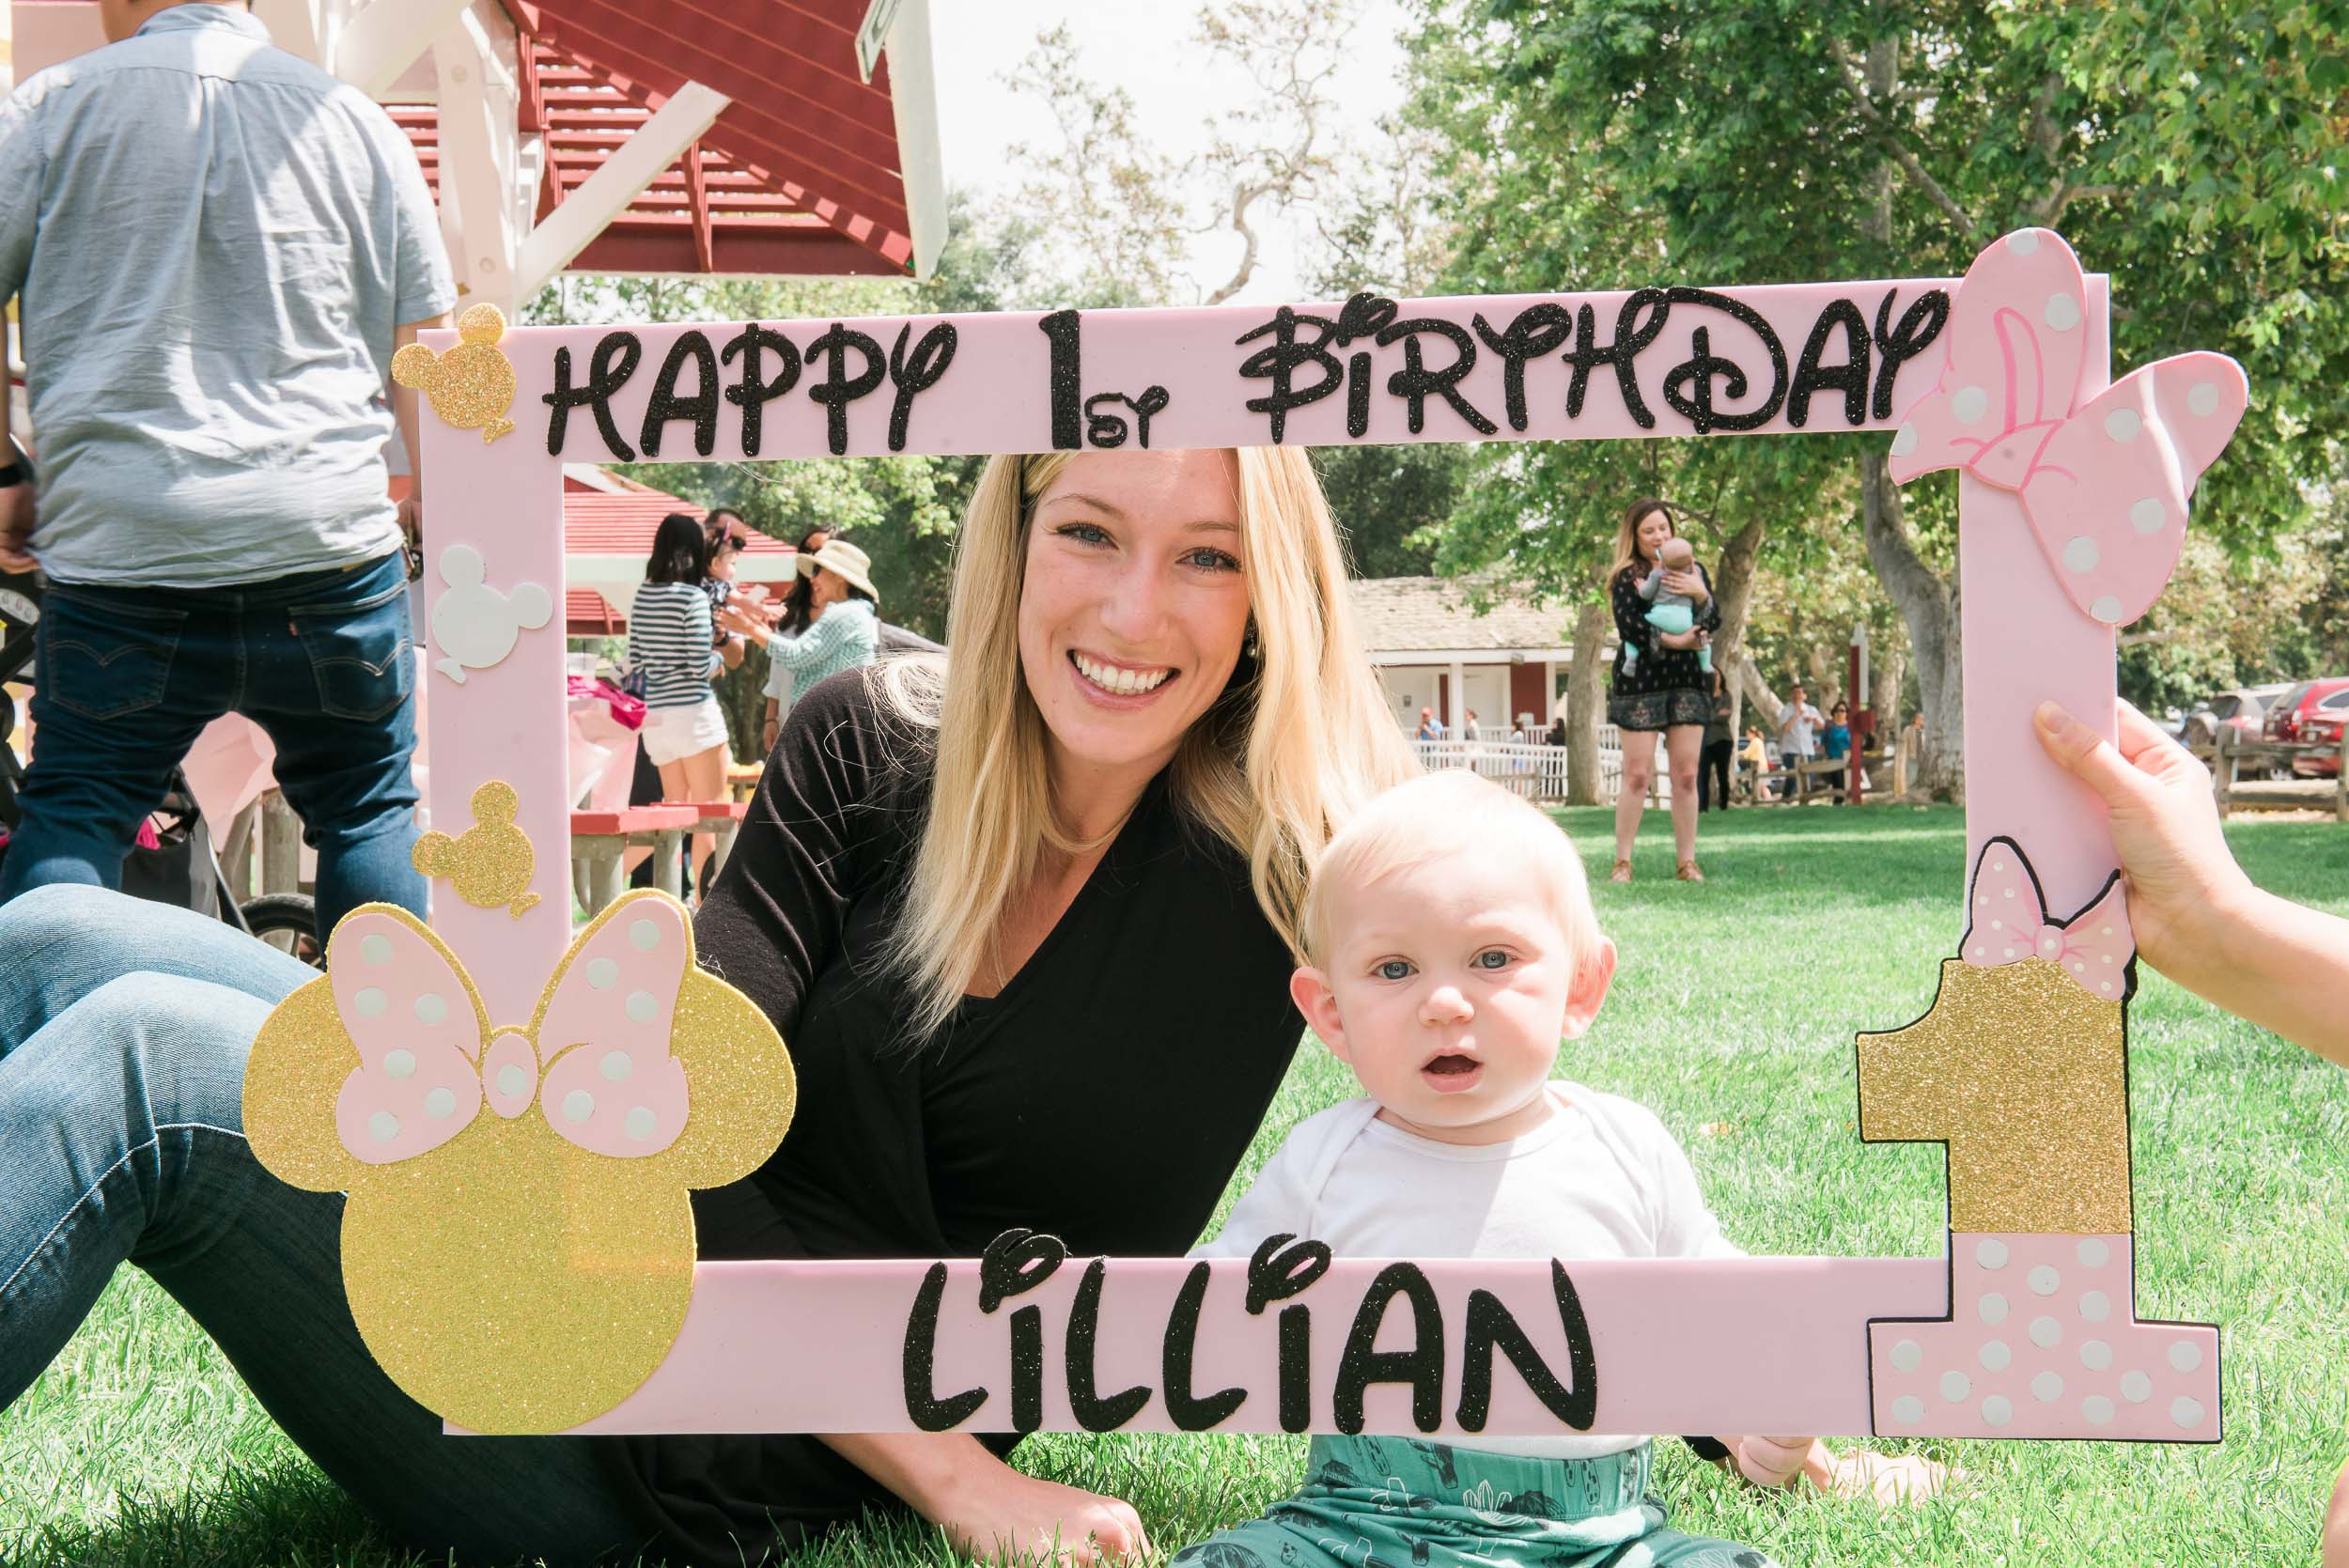 Bryan-Miraflor-Photography-Lillian's-1st-Birthday-Irvine-Railroad-Park-20170409-0045.jpg